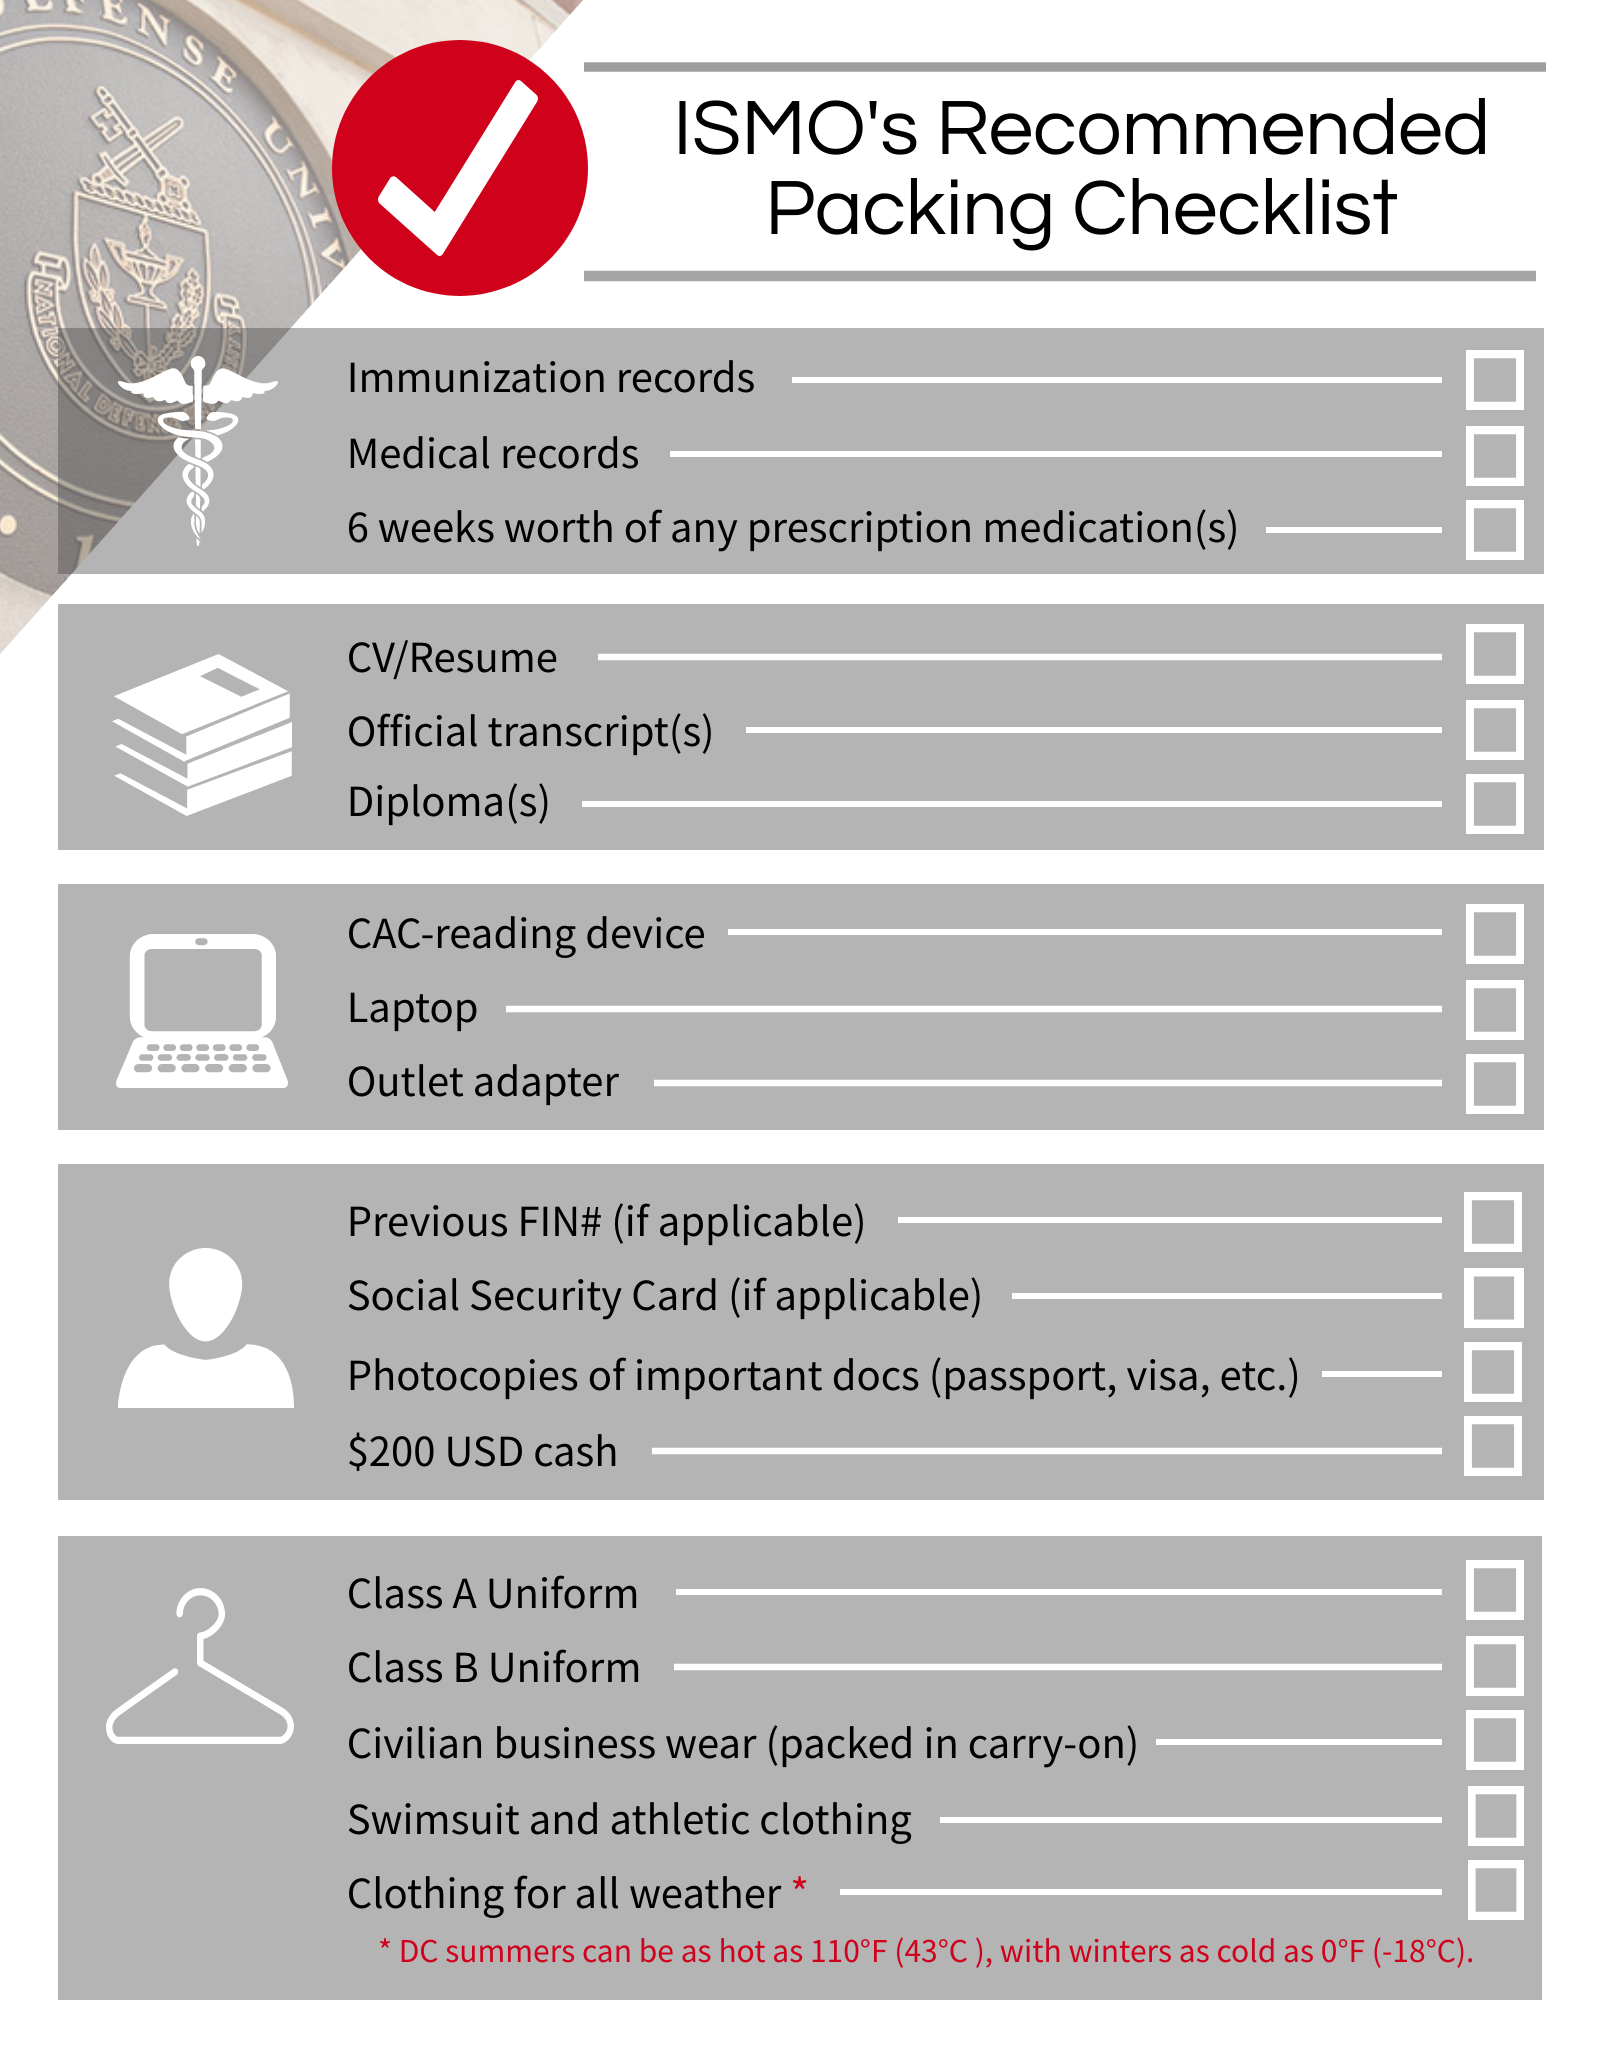 ISMO packing checklist image